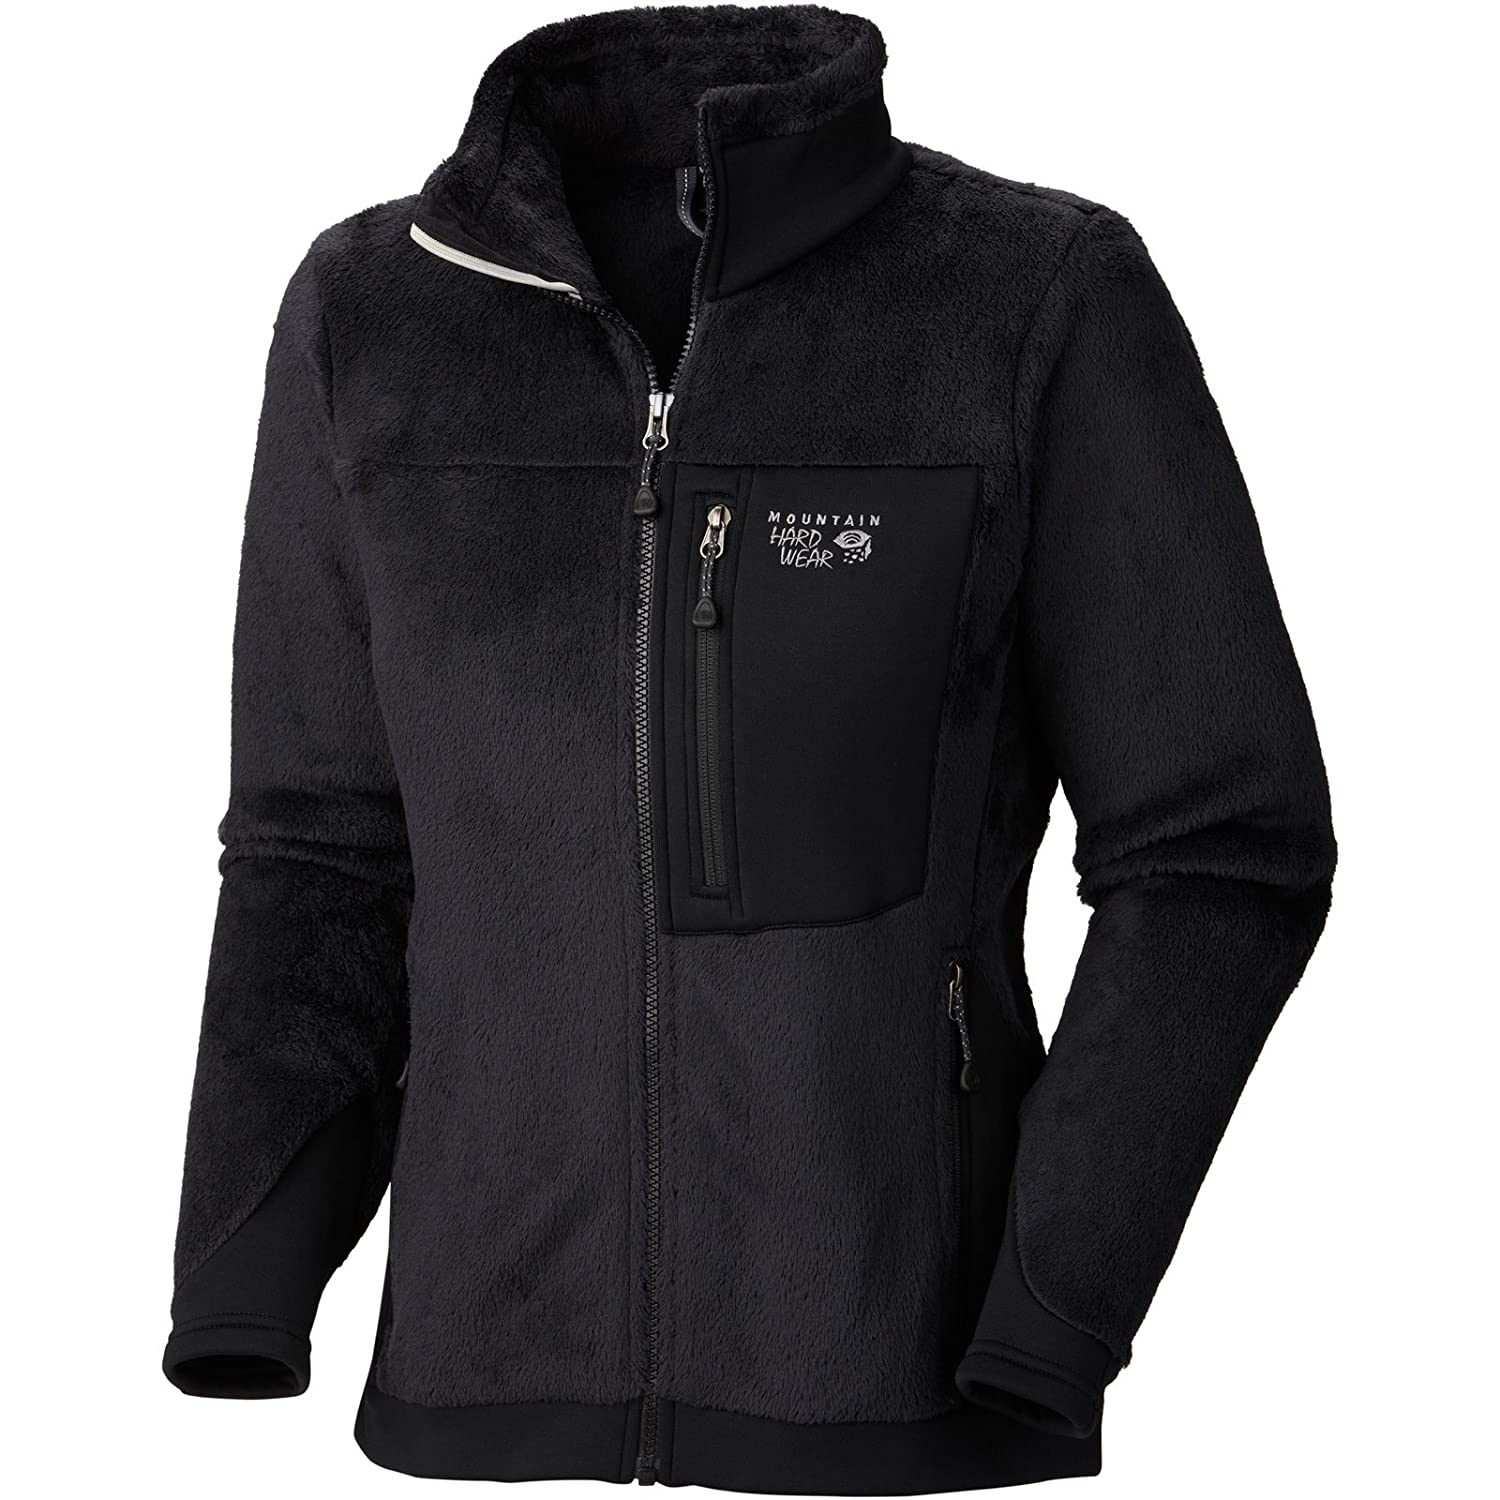 Mountain Hardwear Damen Jacke Monkey 200